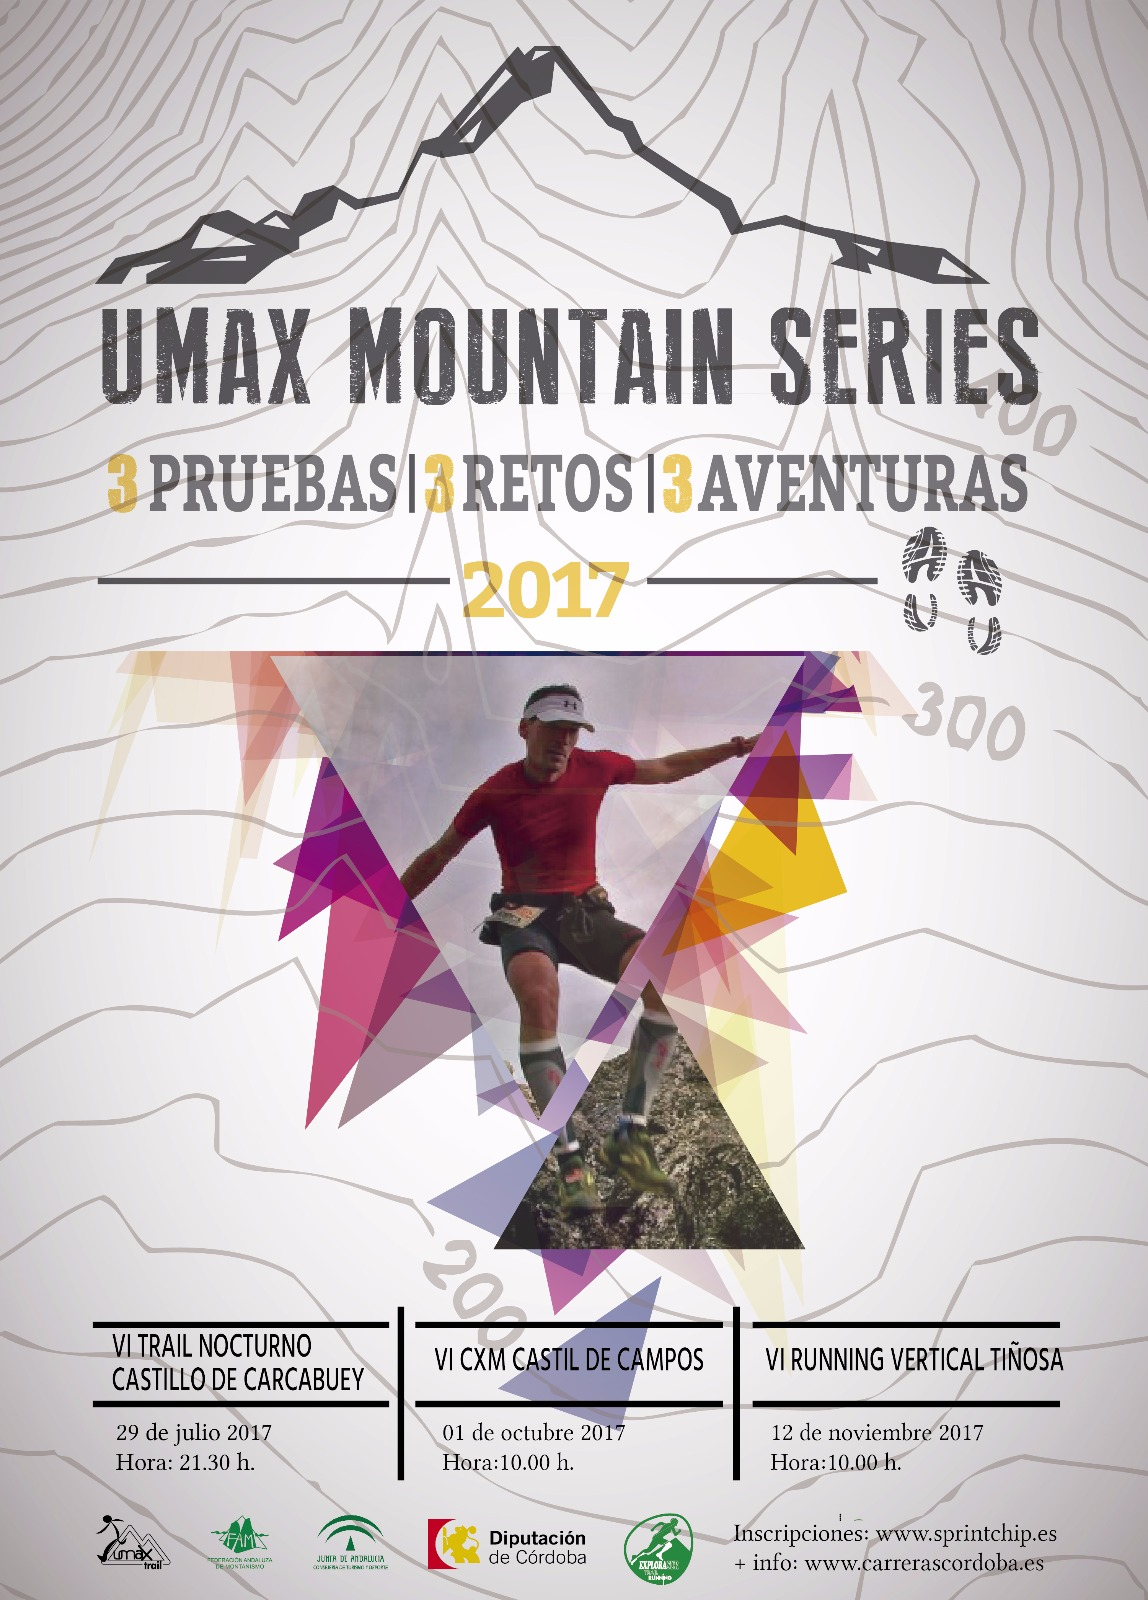 CIRCUITO UMAX MOUNTAIN SERIES - Sprint Chip